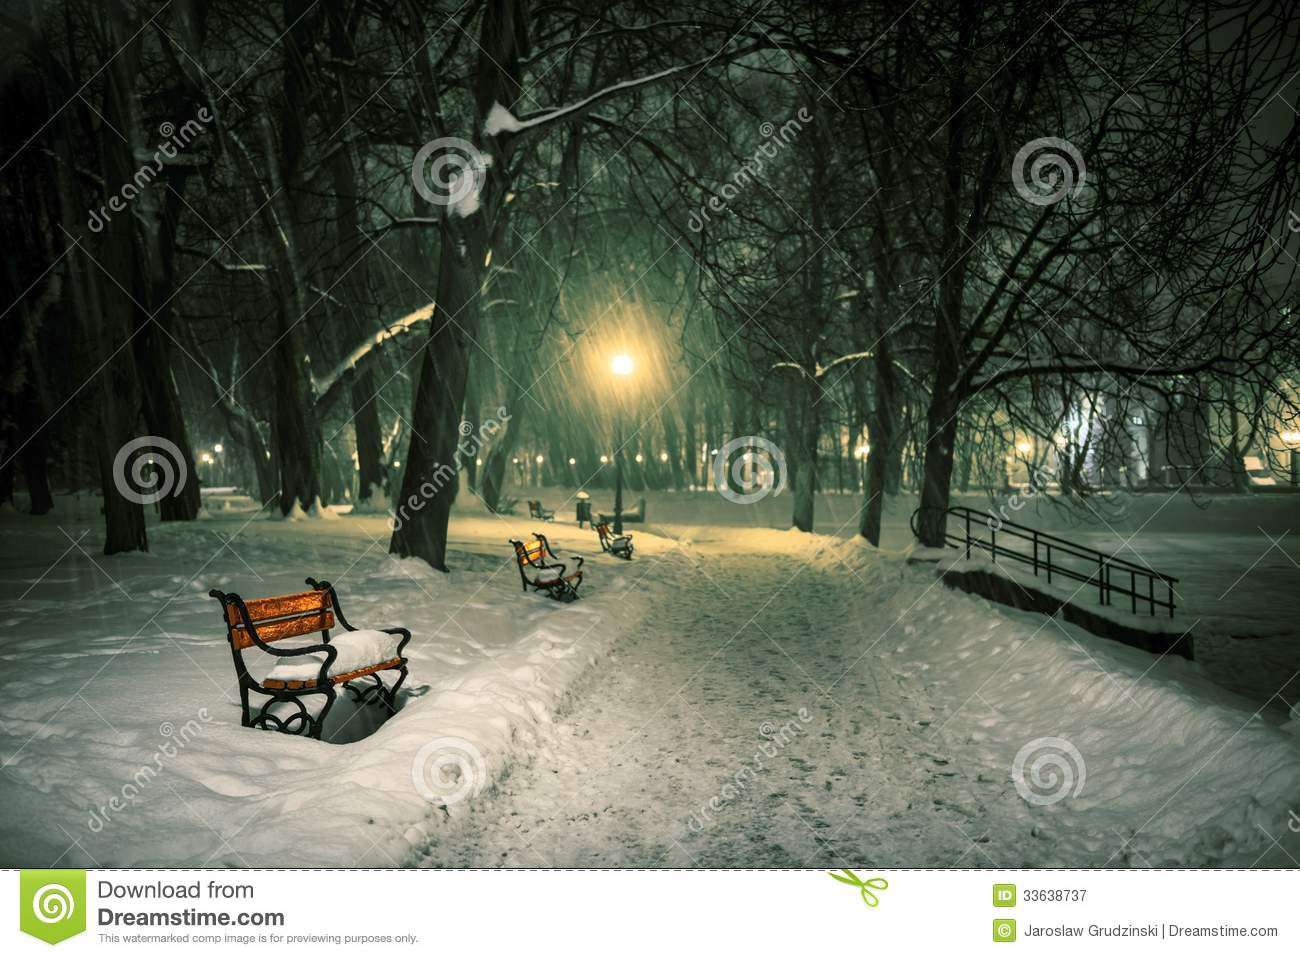 Free Download Of Christmas Wallpaper With Snow Falling Red Bench In The Park Royalty Free Stock Photography